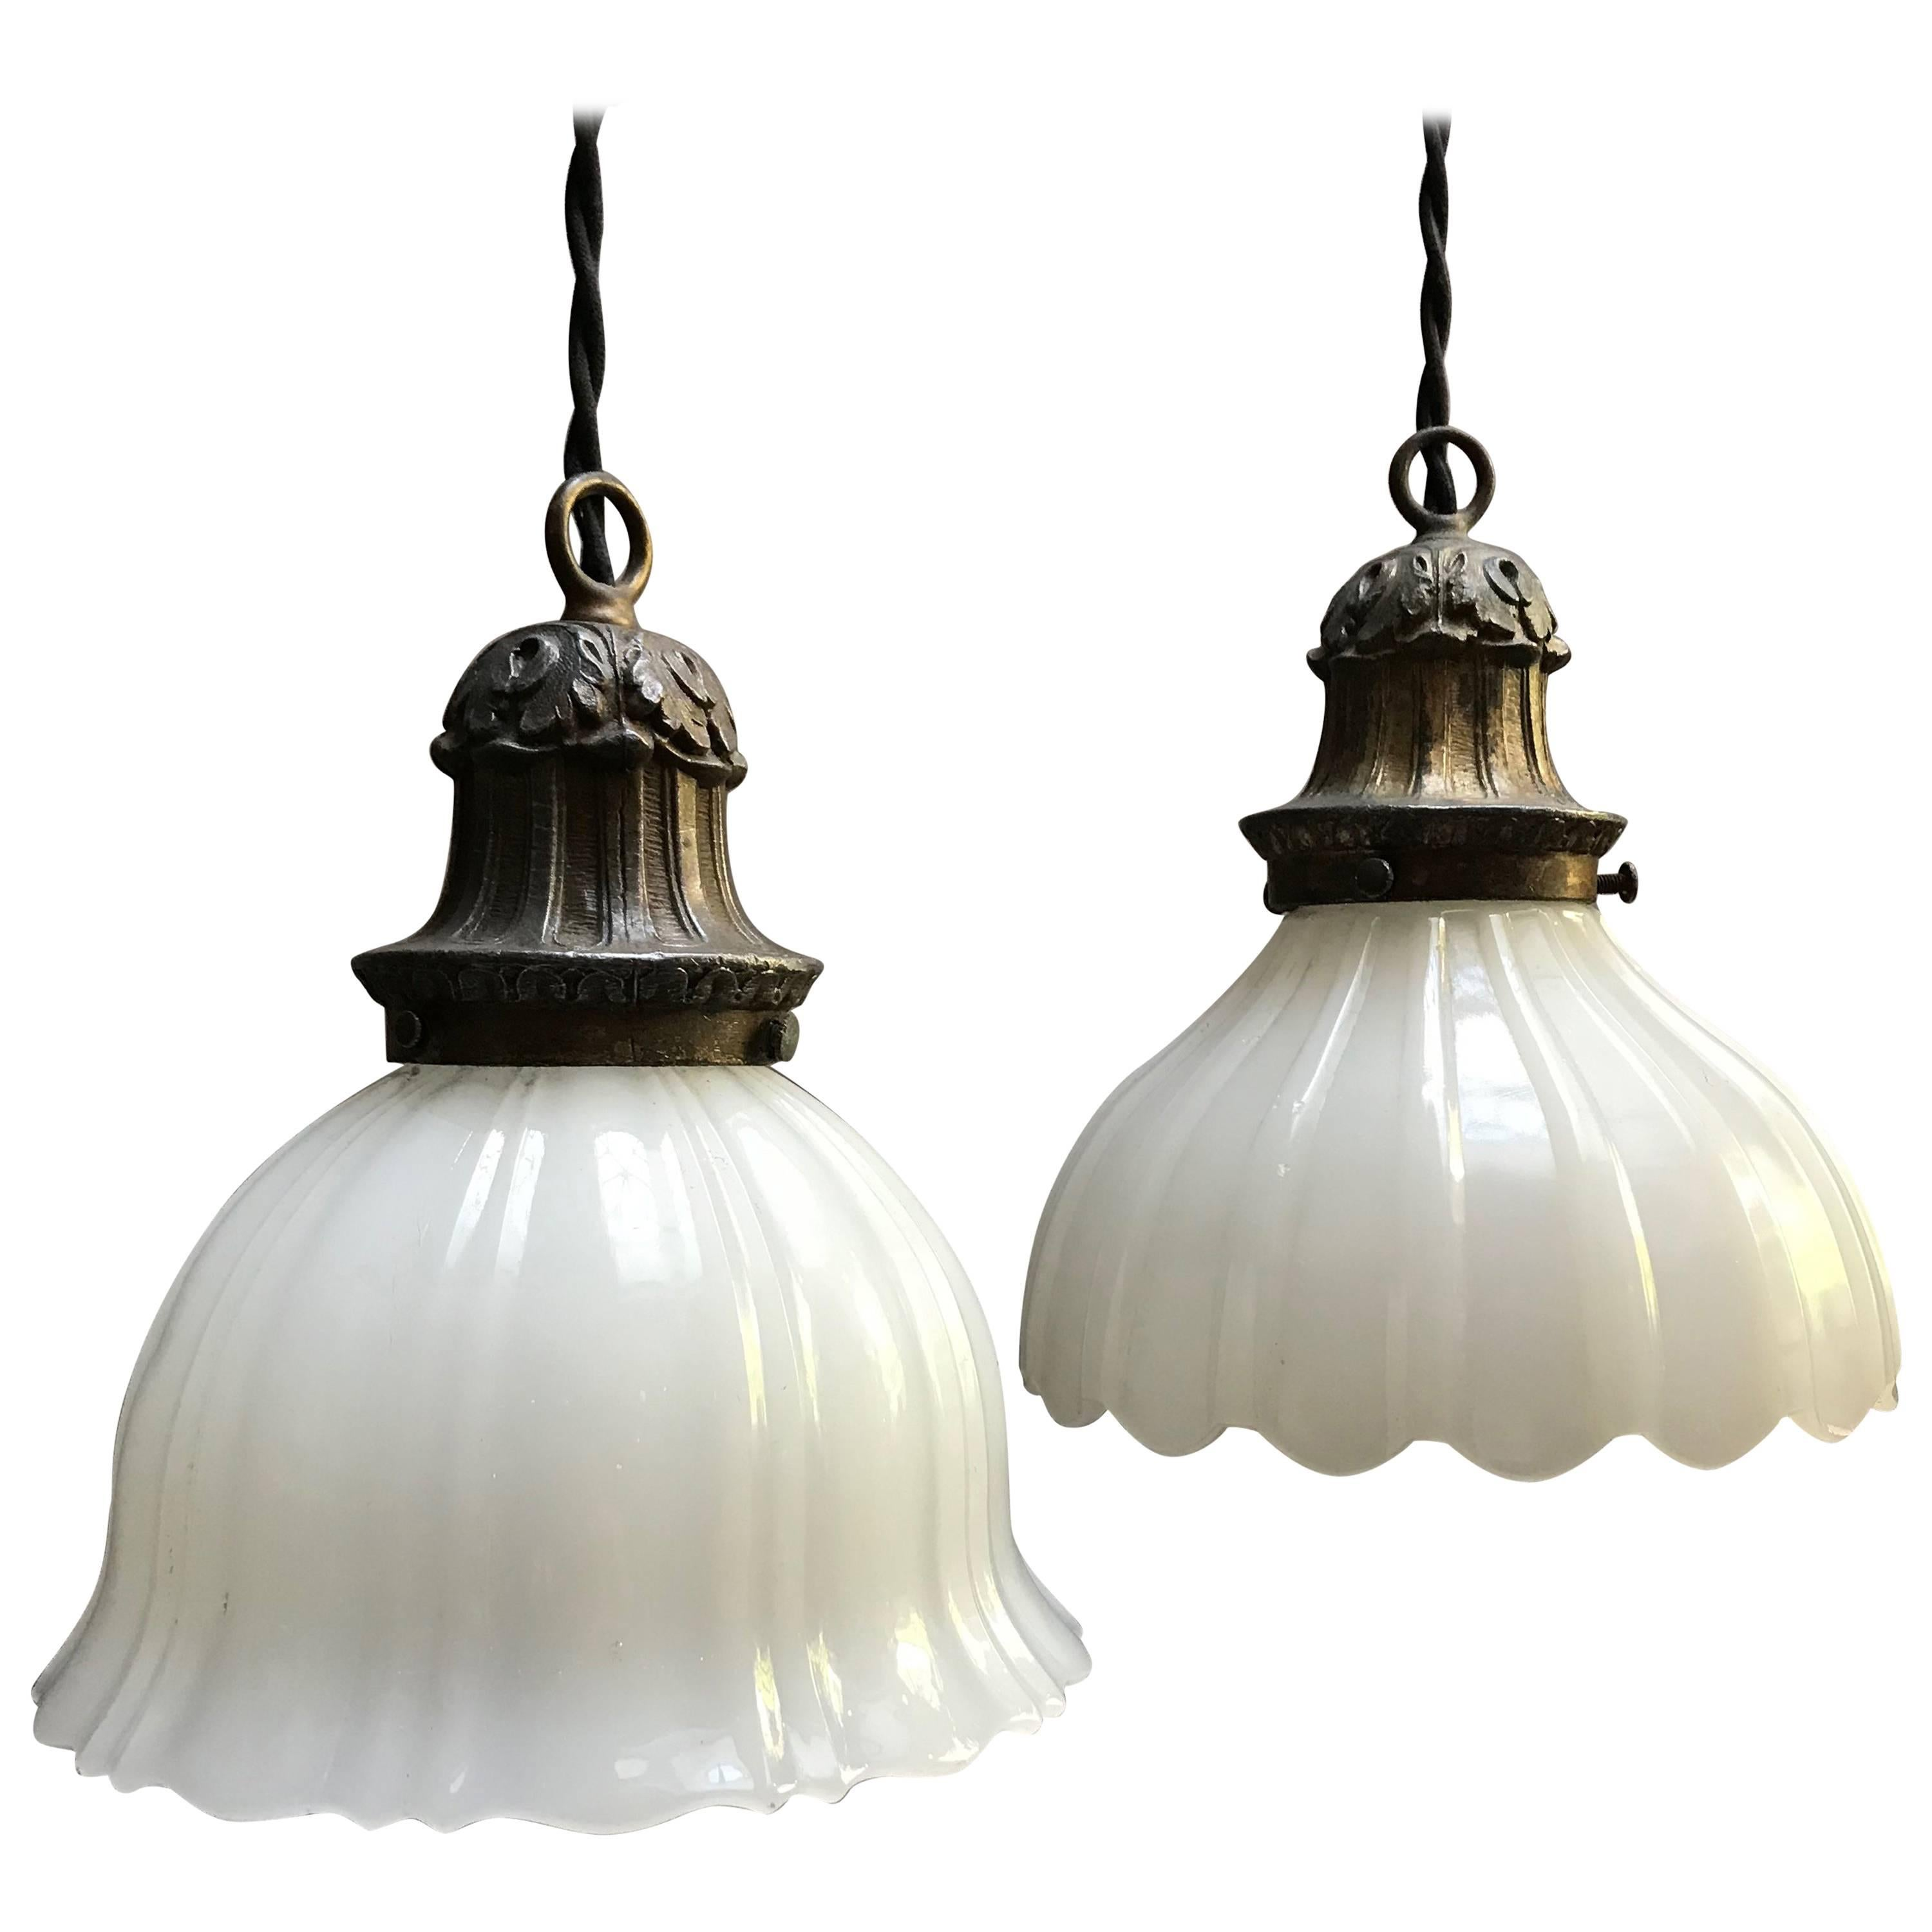 Pendant Lighting Early 20th Century Scalloped Milk Glass Pendant Lights